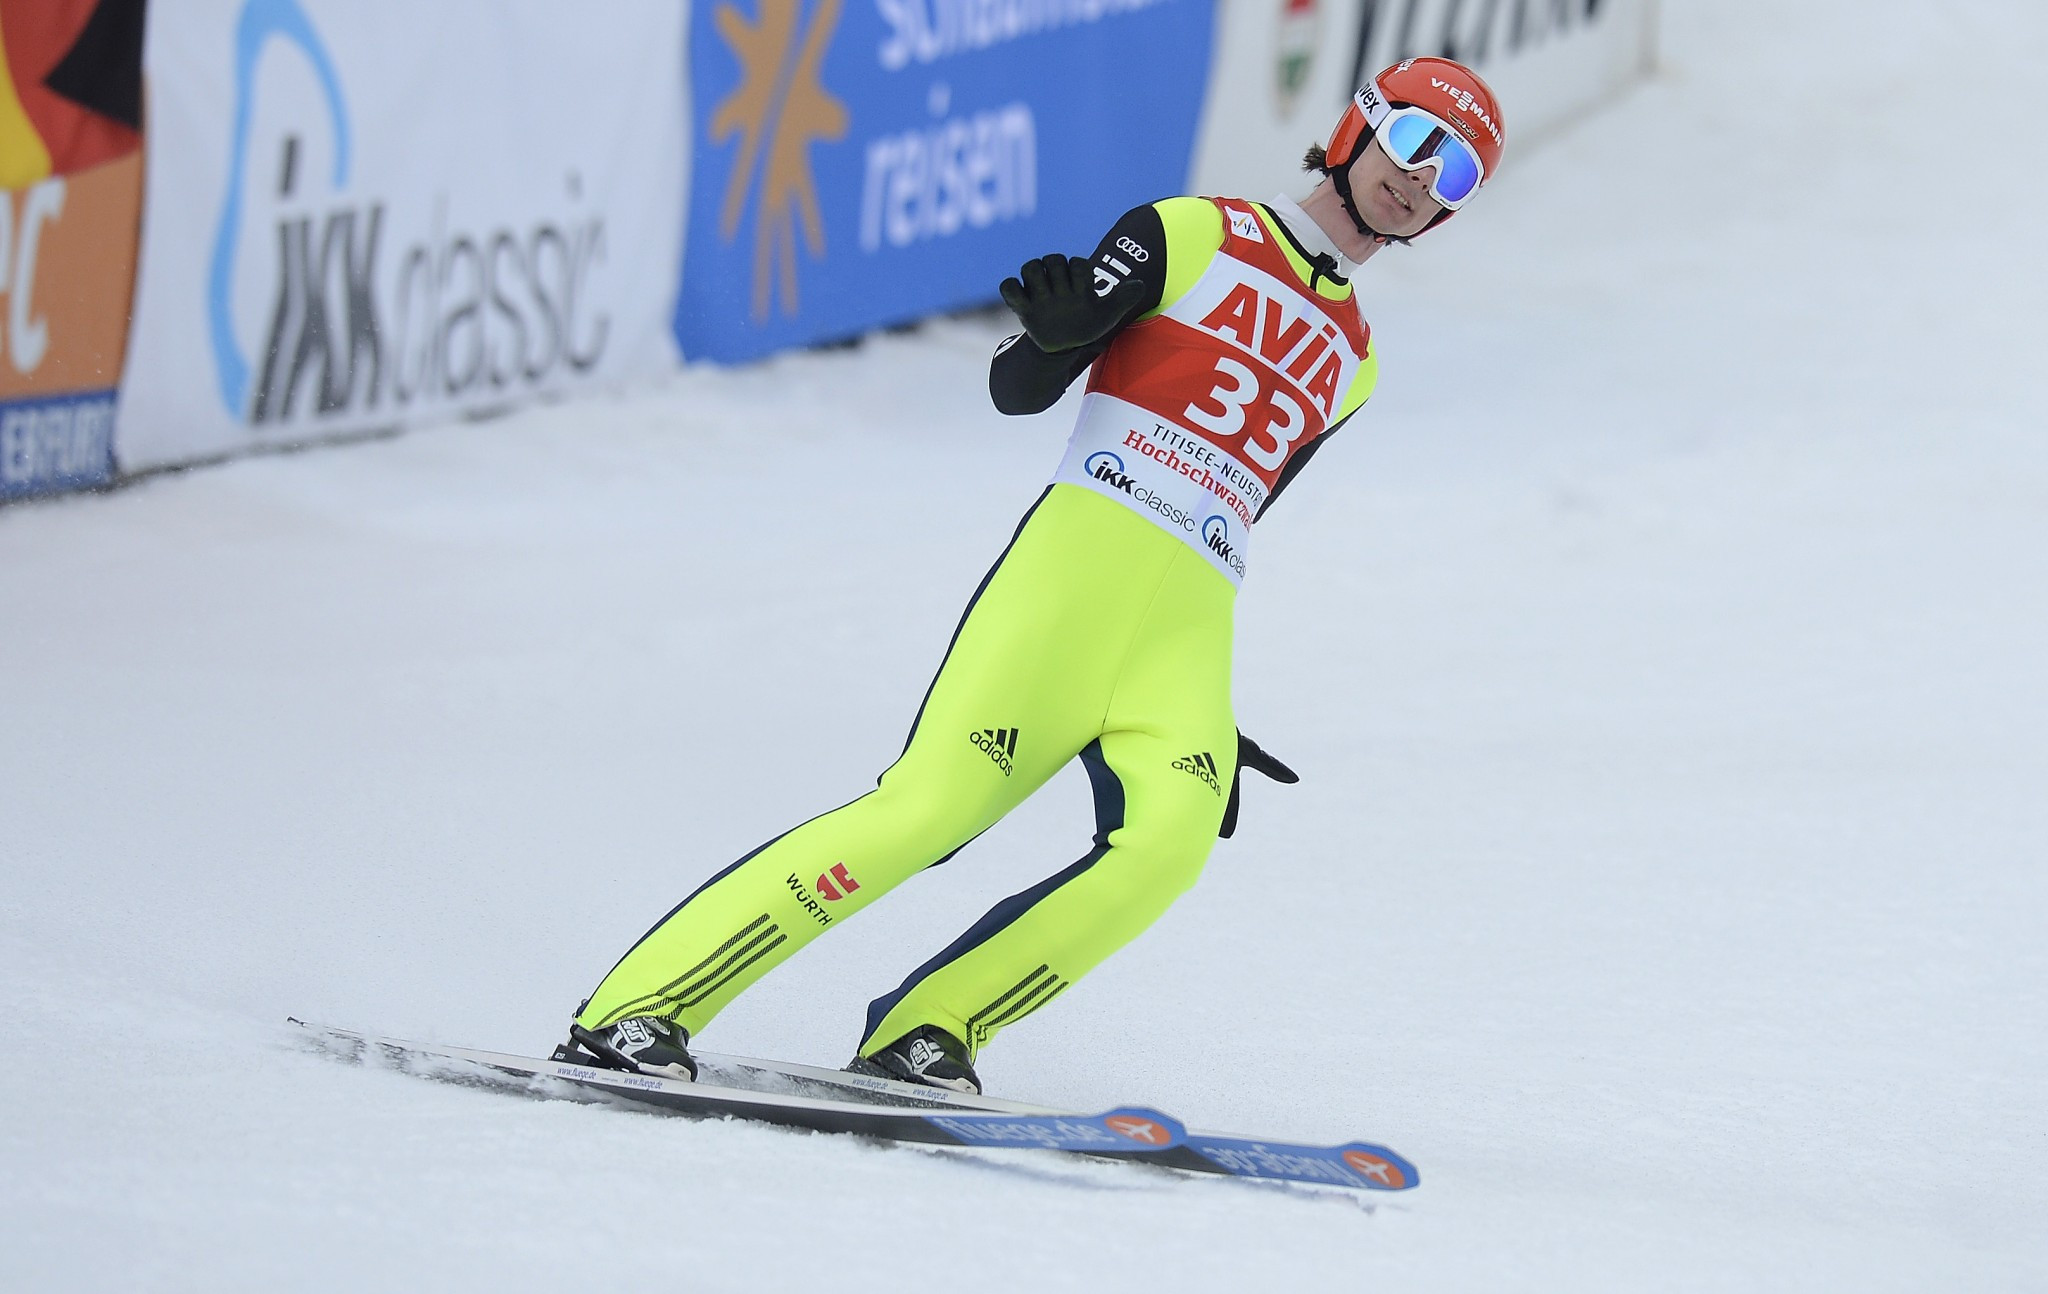 Olympic ski jumping champion hit with back injury